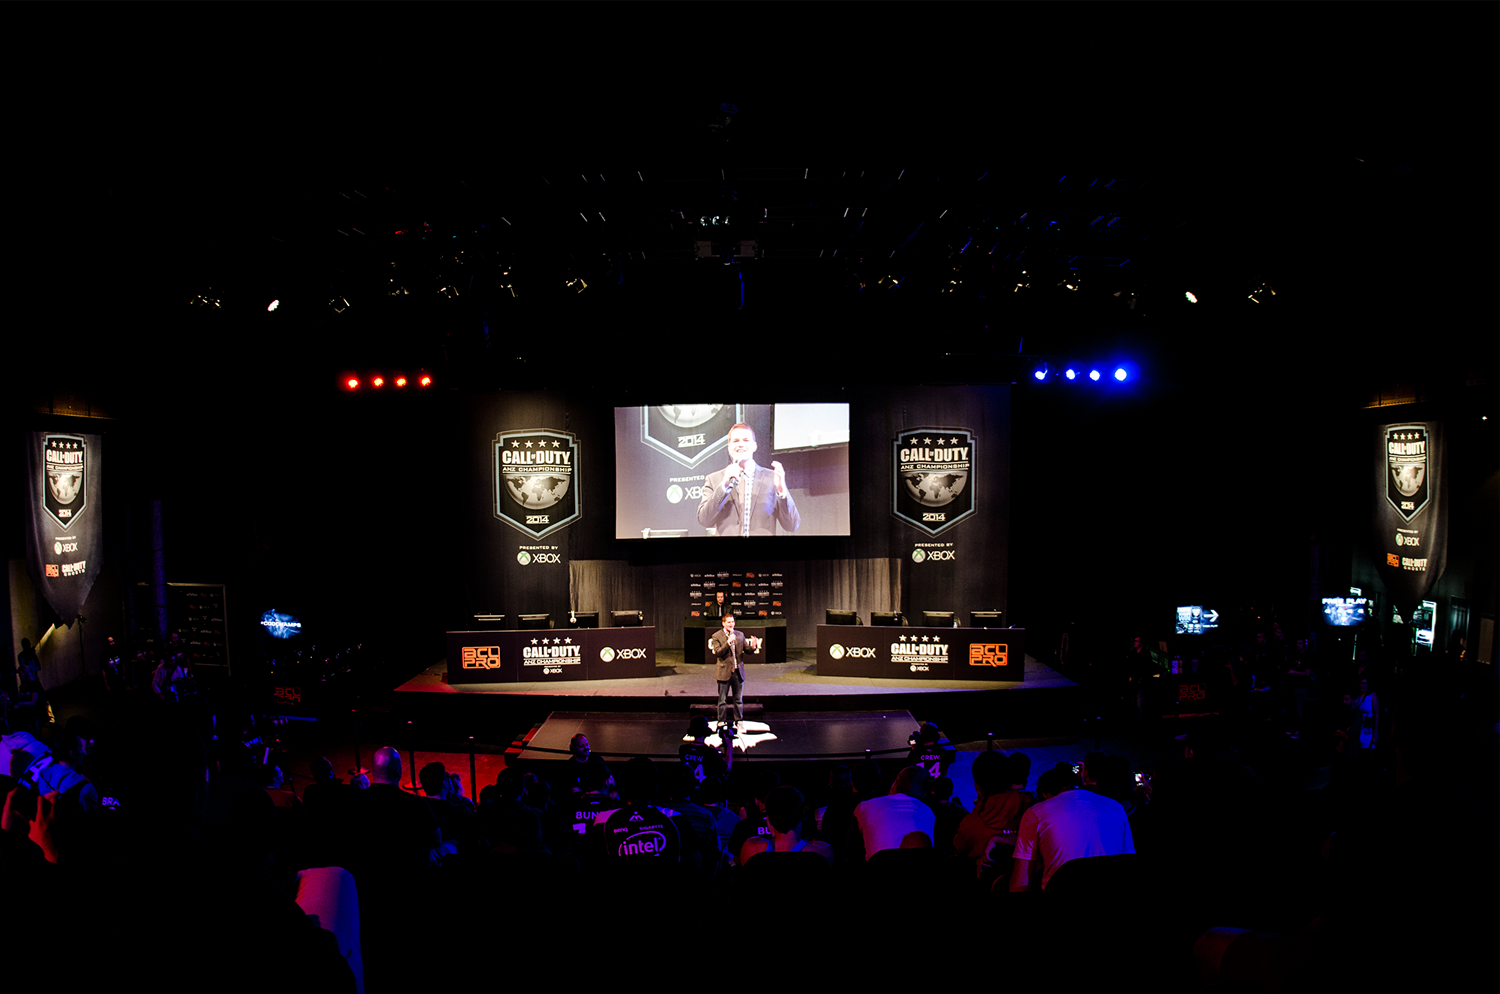 Call of Duty Championship - 2014